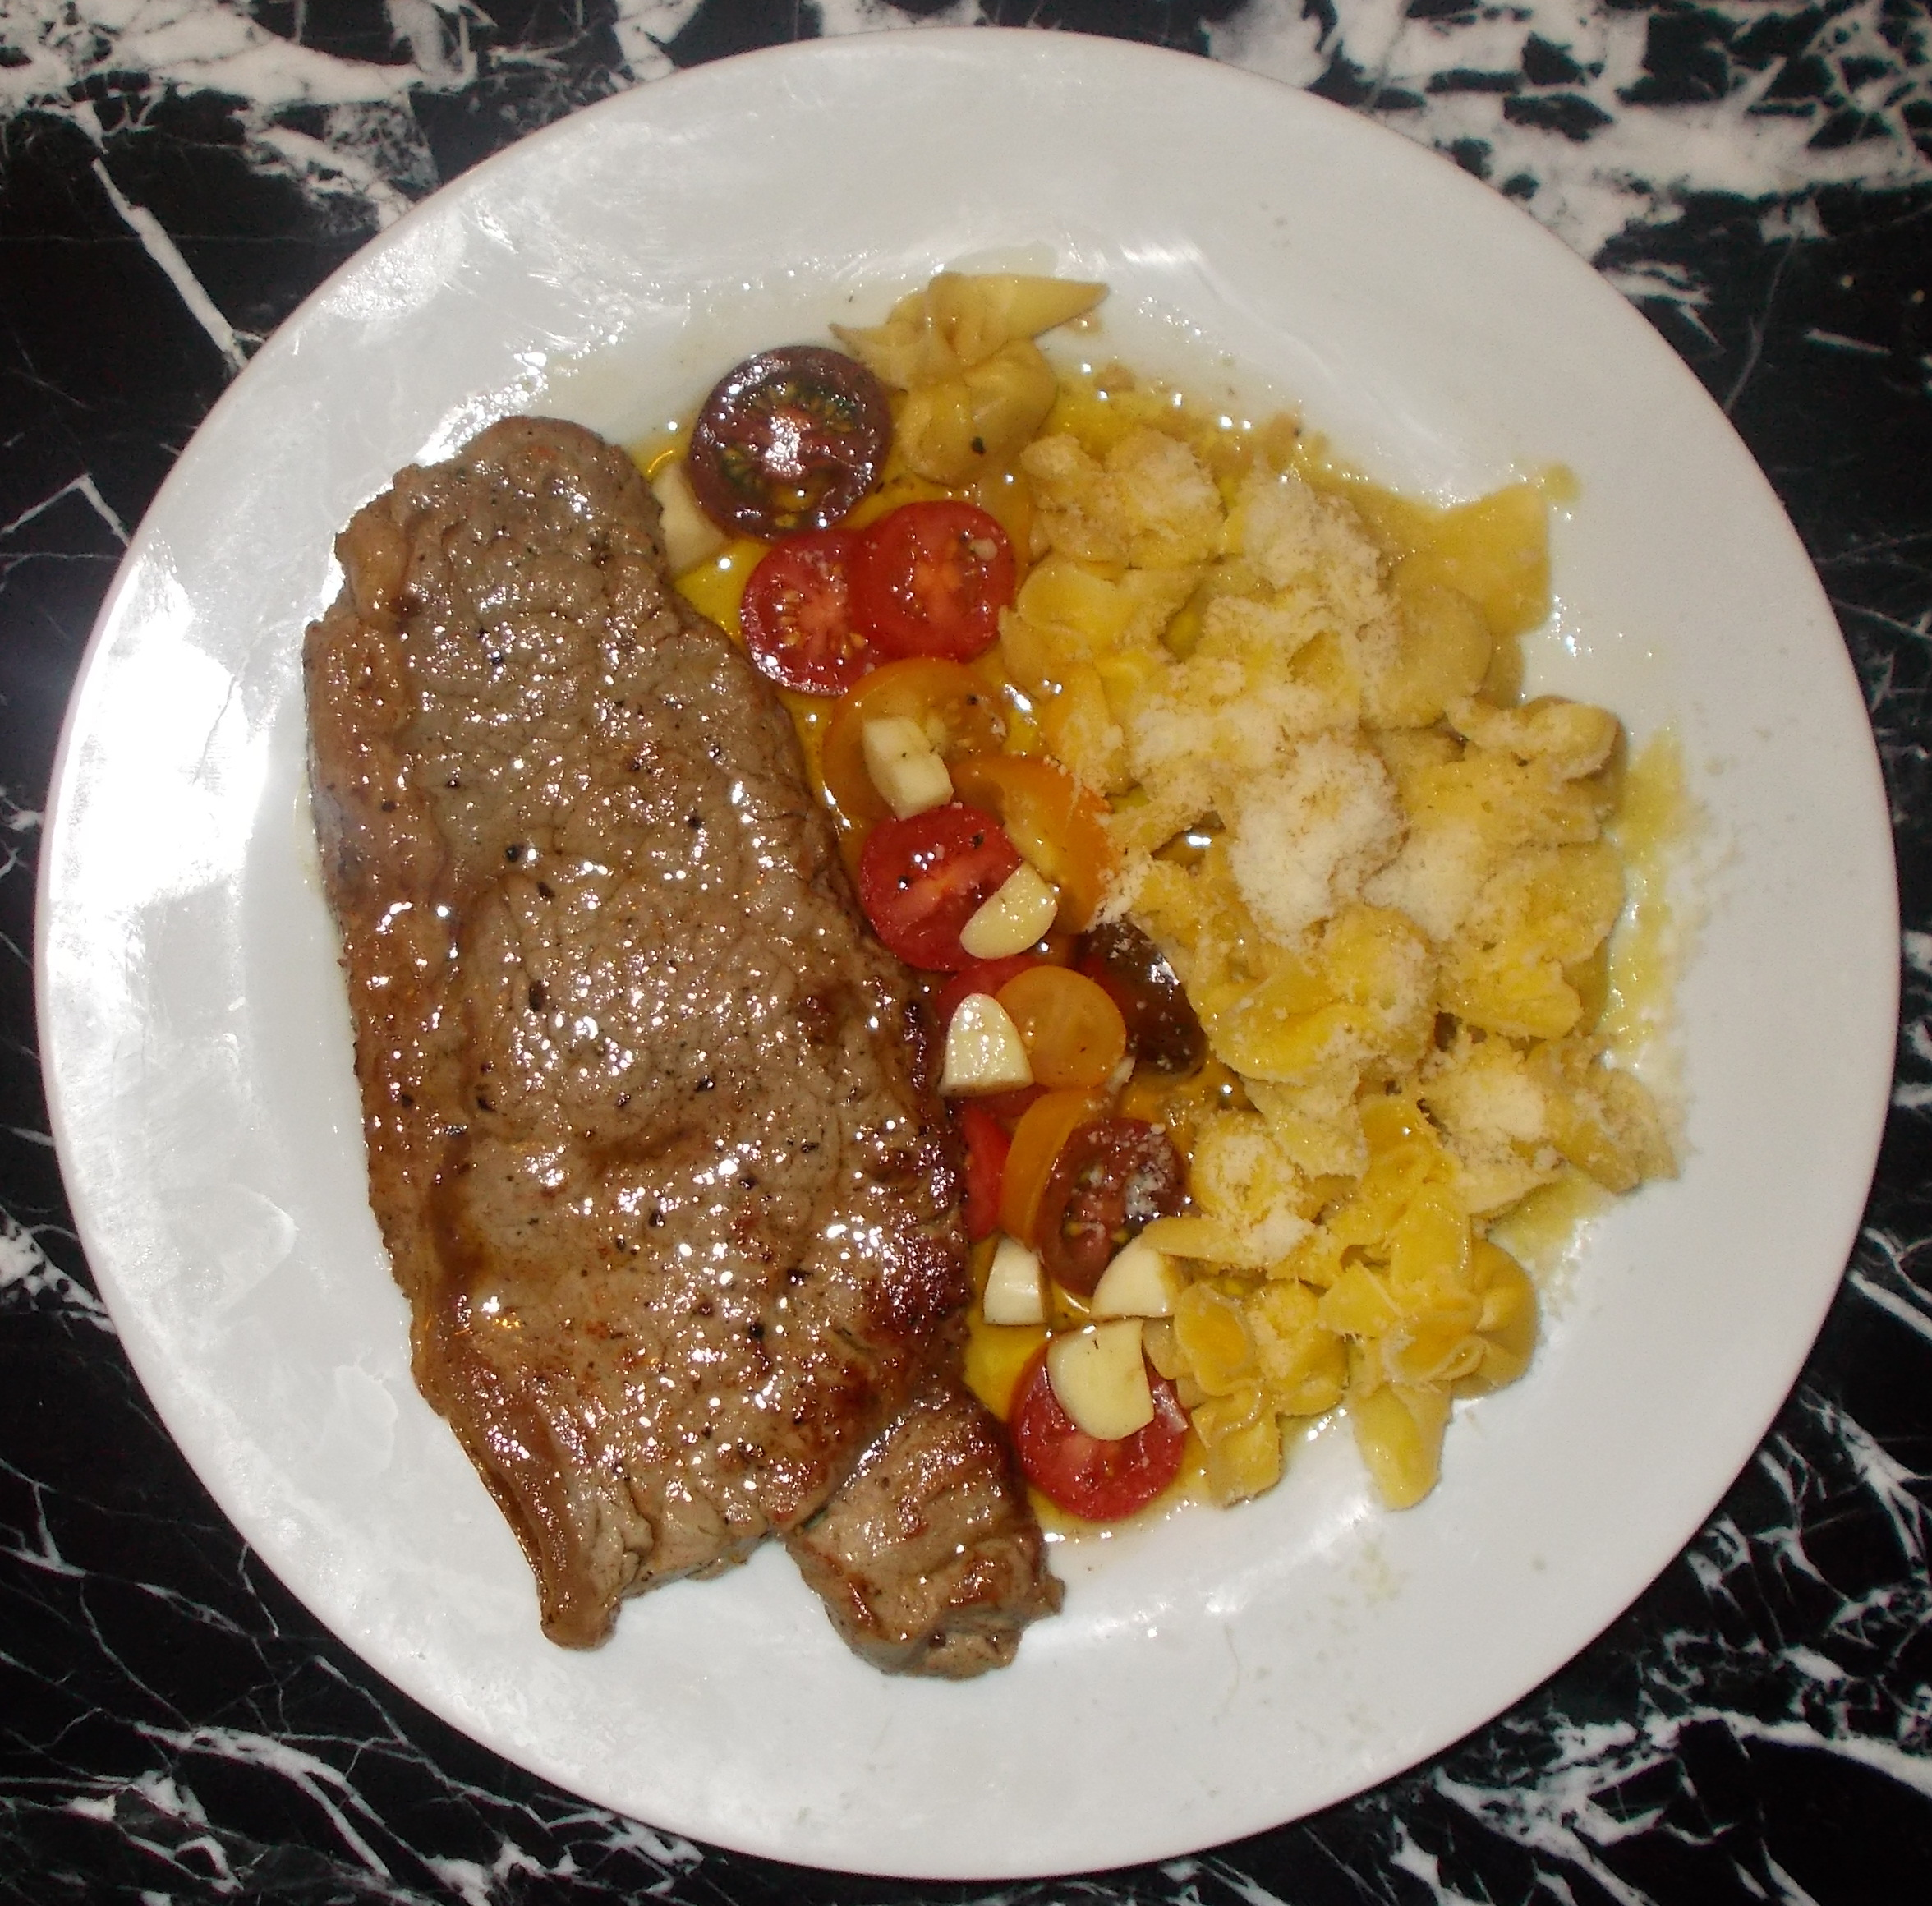 Sirloin steak & saccettini (Su1271)